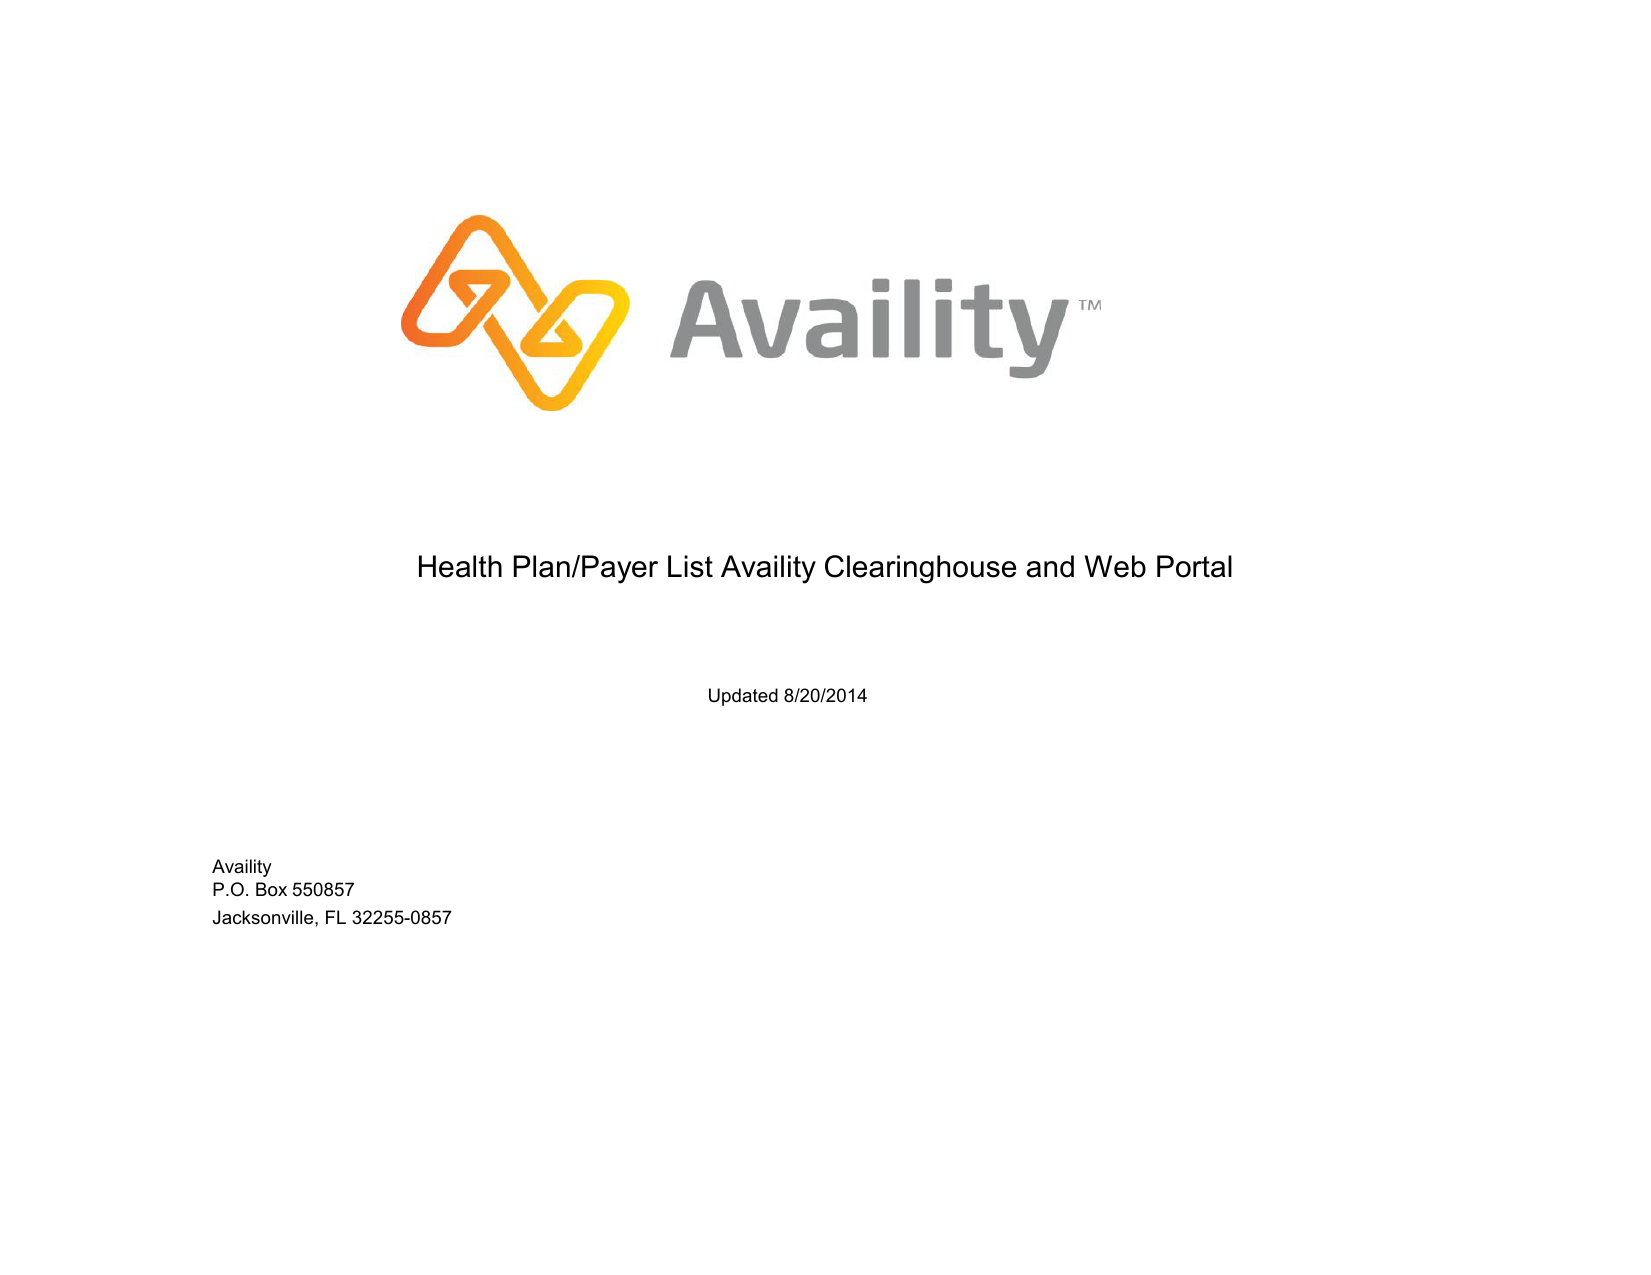 Health Plan/Payer List Availity Clearinghouse and Web Portal